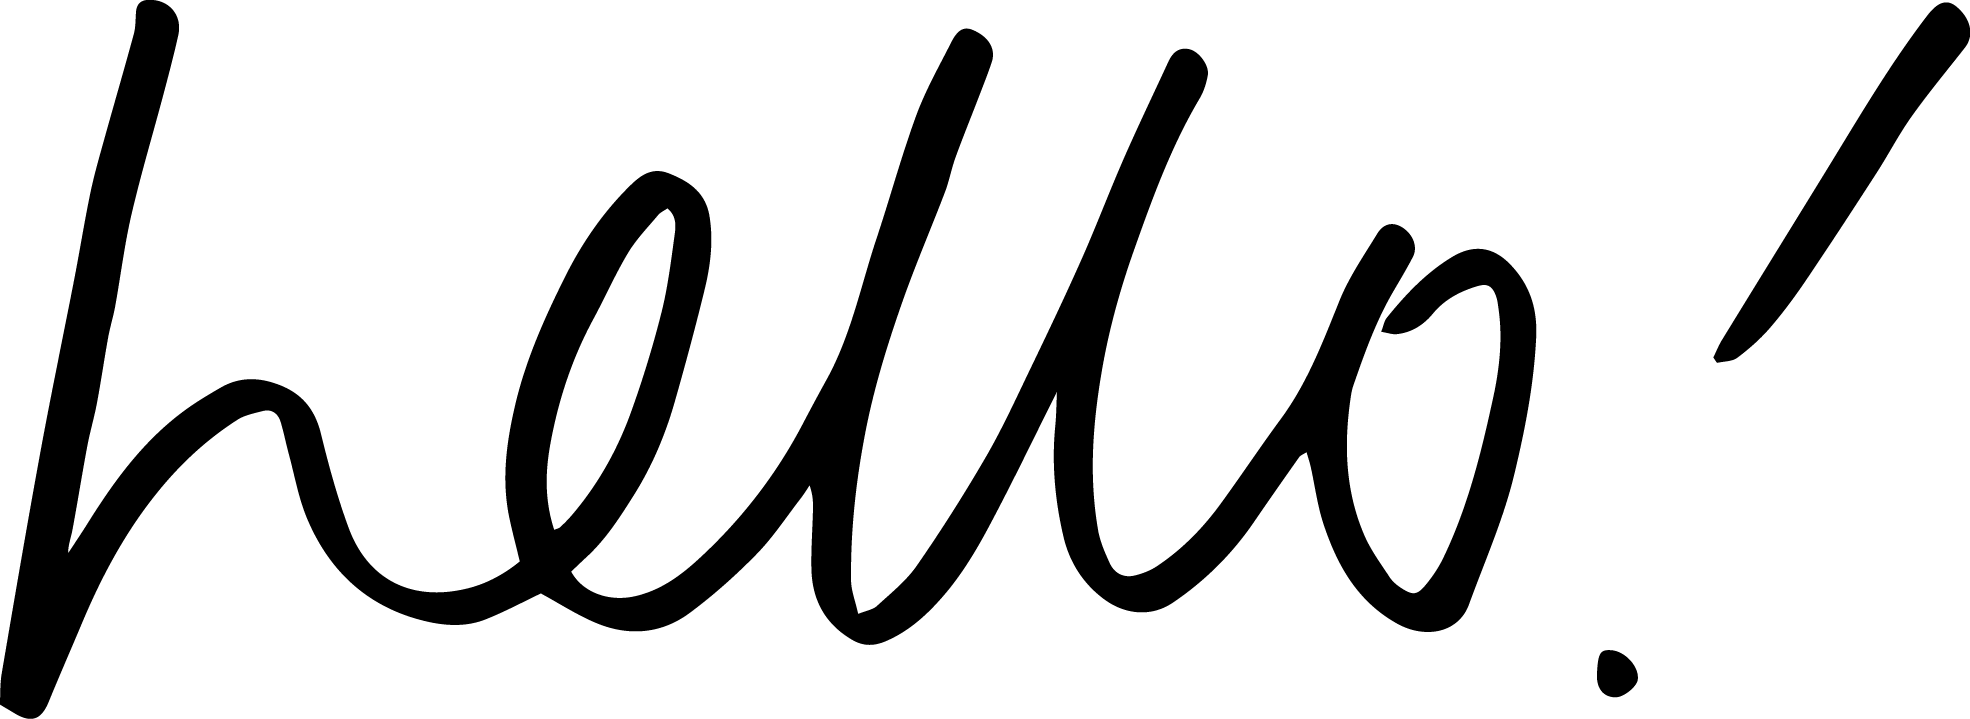 LACYLETTERING-07.png